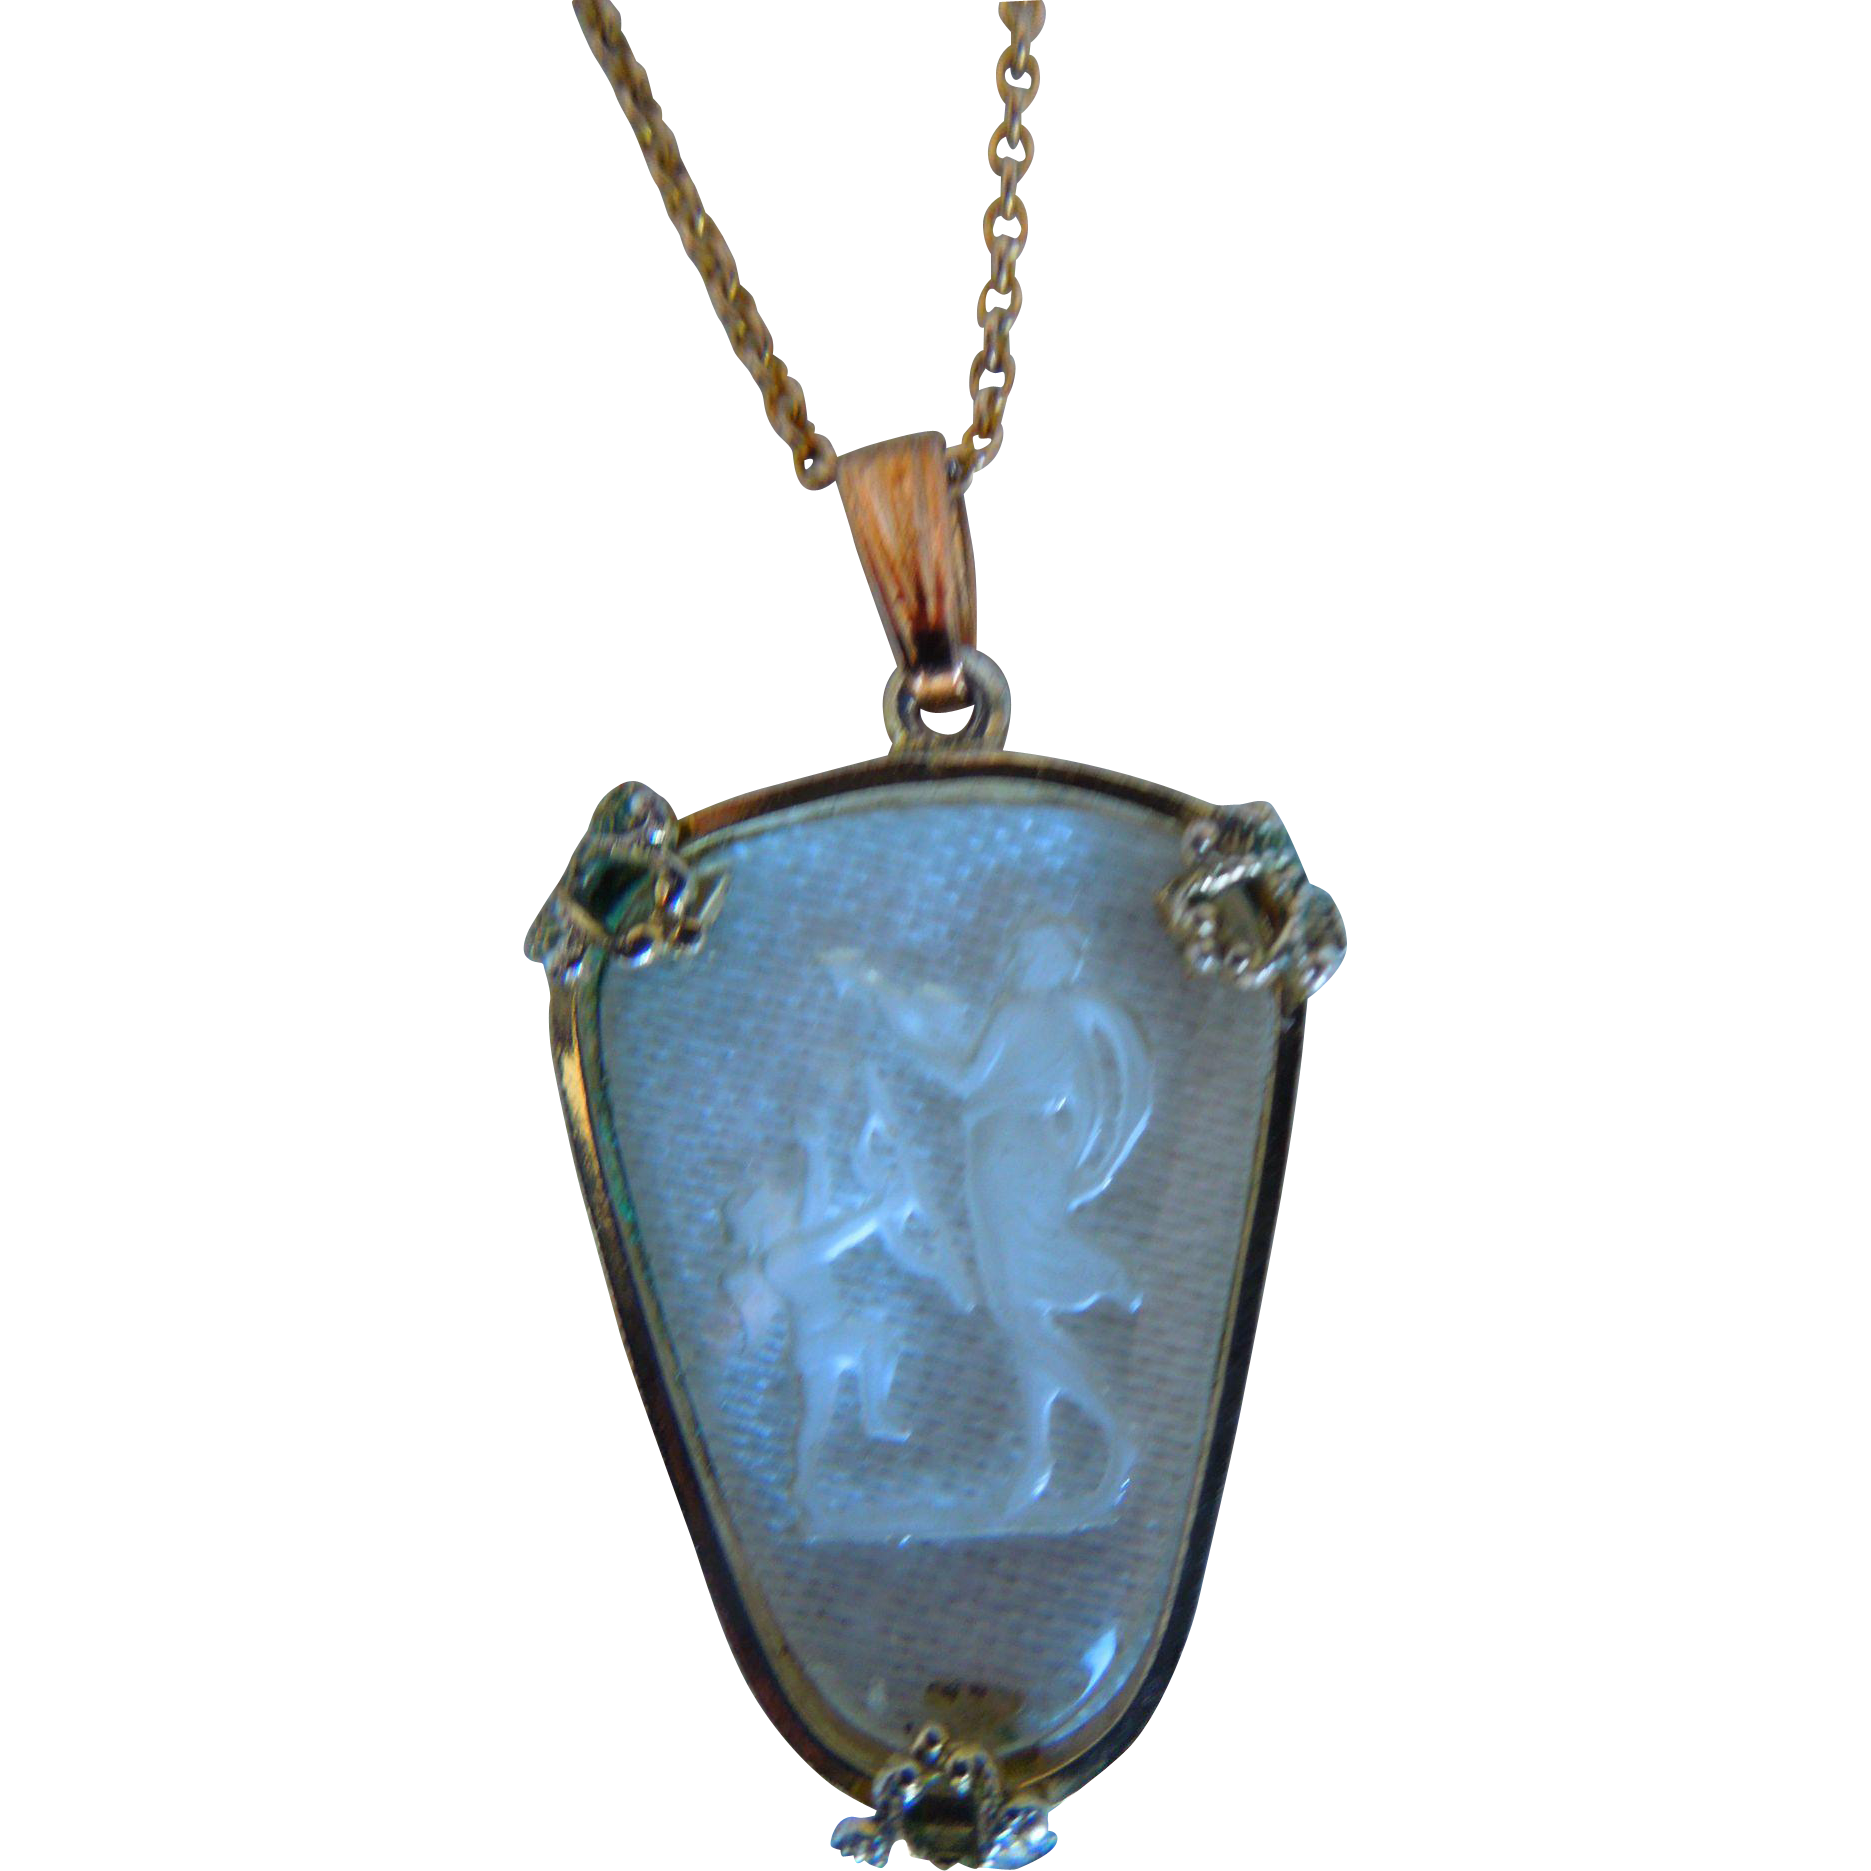 west bubbles blowing etched by mothers pendant isaacs necklace day lucy antique angel german pendants pin intaglio glass